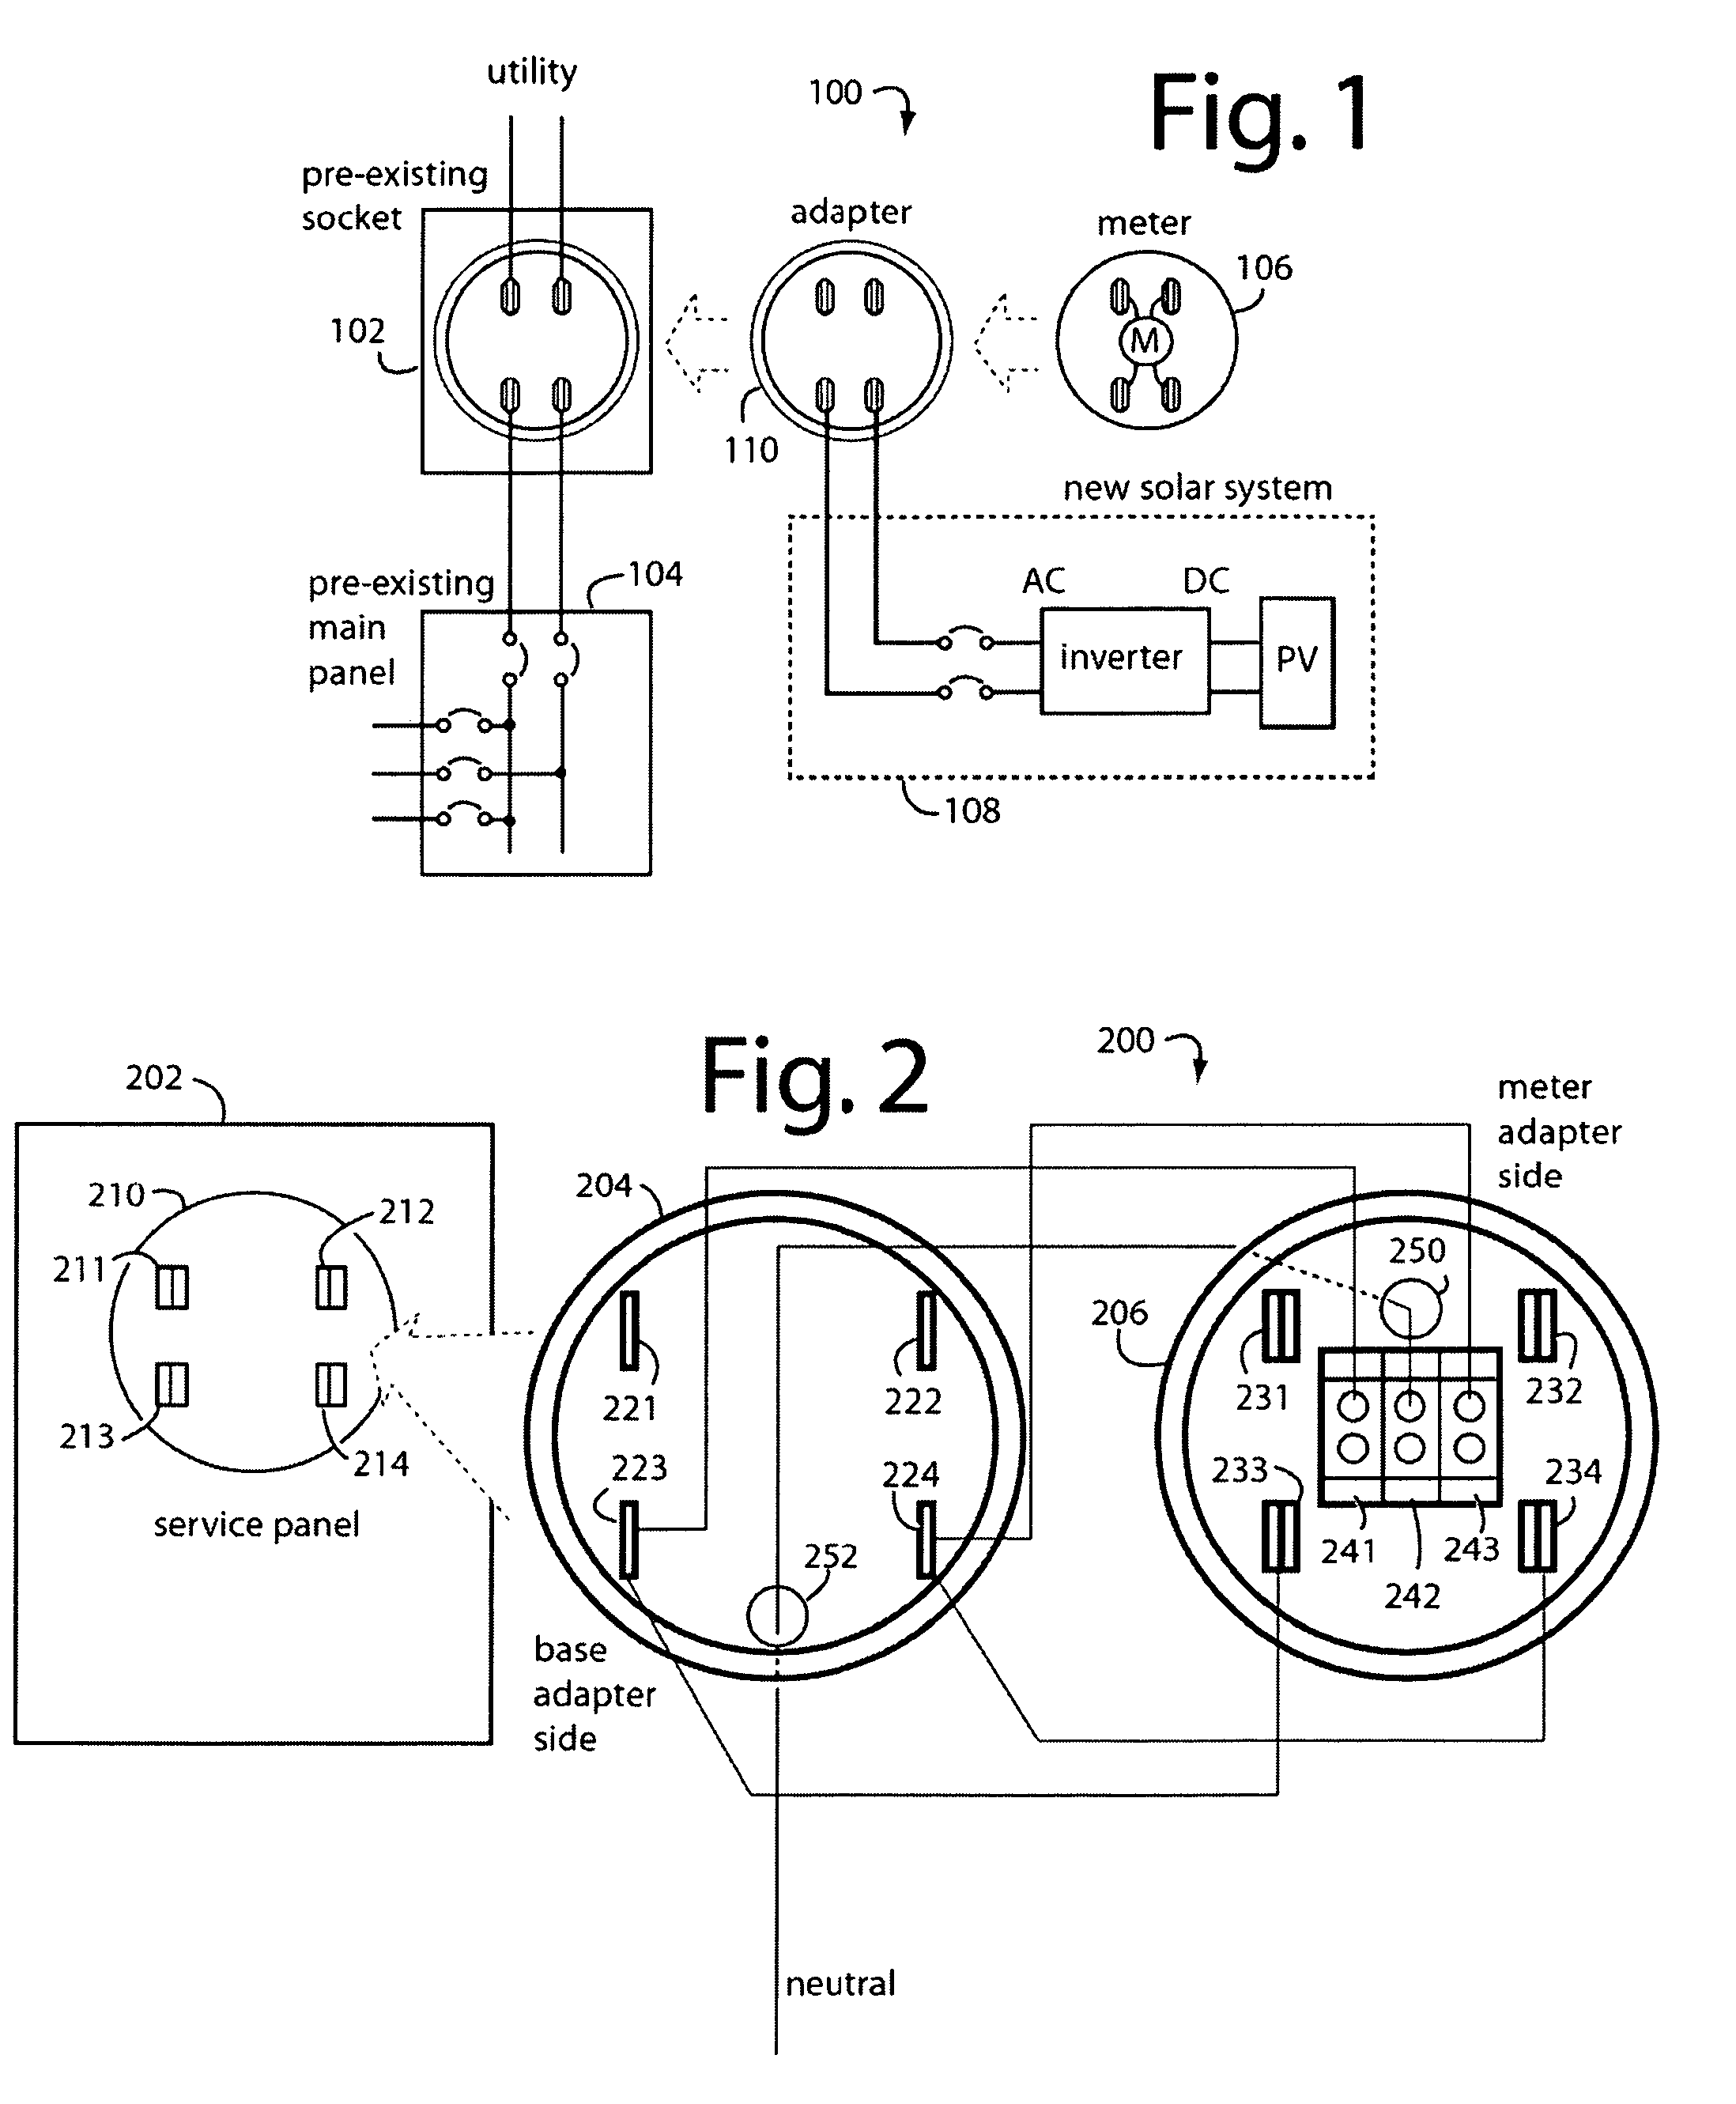 US07648389 20100119 D00001 patent us7648389 supply side backfeed meter socket adapter Single Phase Meter Wiring Diagram at soozxer.org